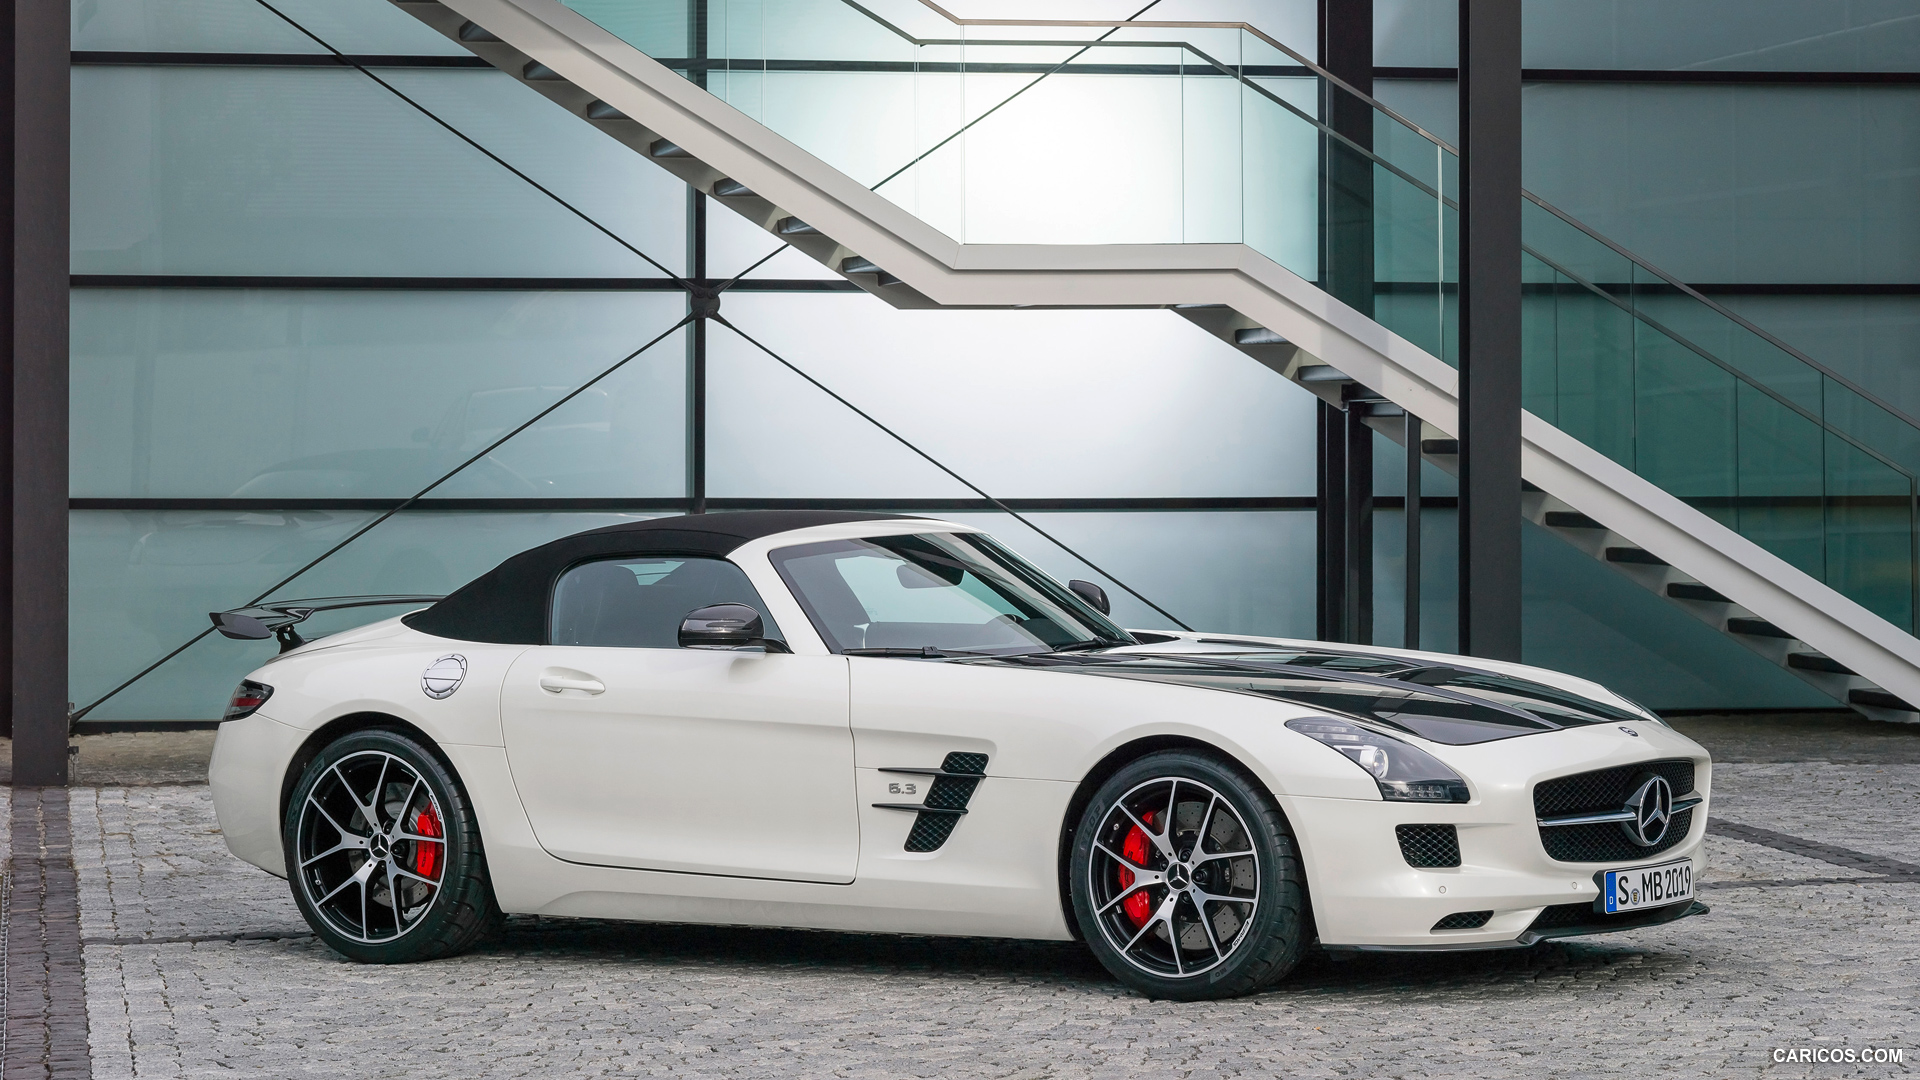 2015 mercedes benz sls amg gt final edition image 21 for 2015 mercedes benz sls amg